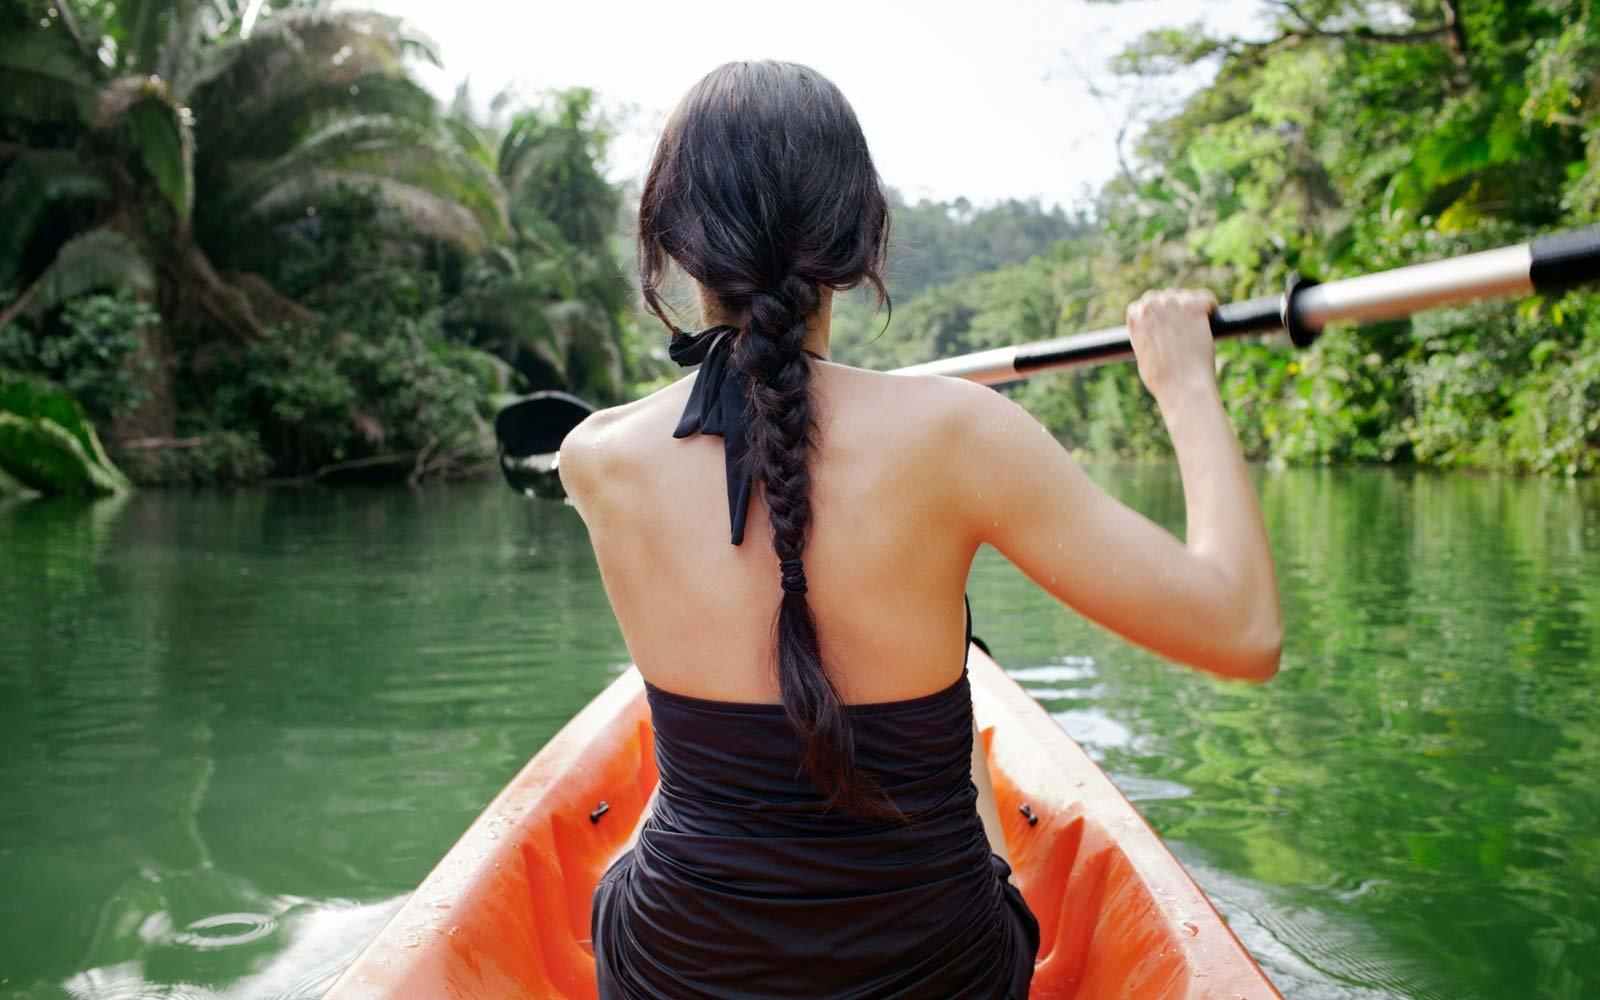 Rear view of woman kayaking on lake at forest